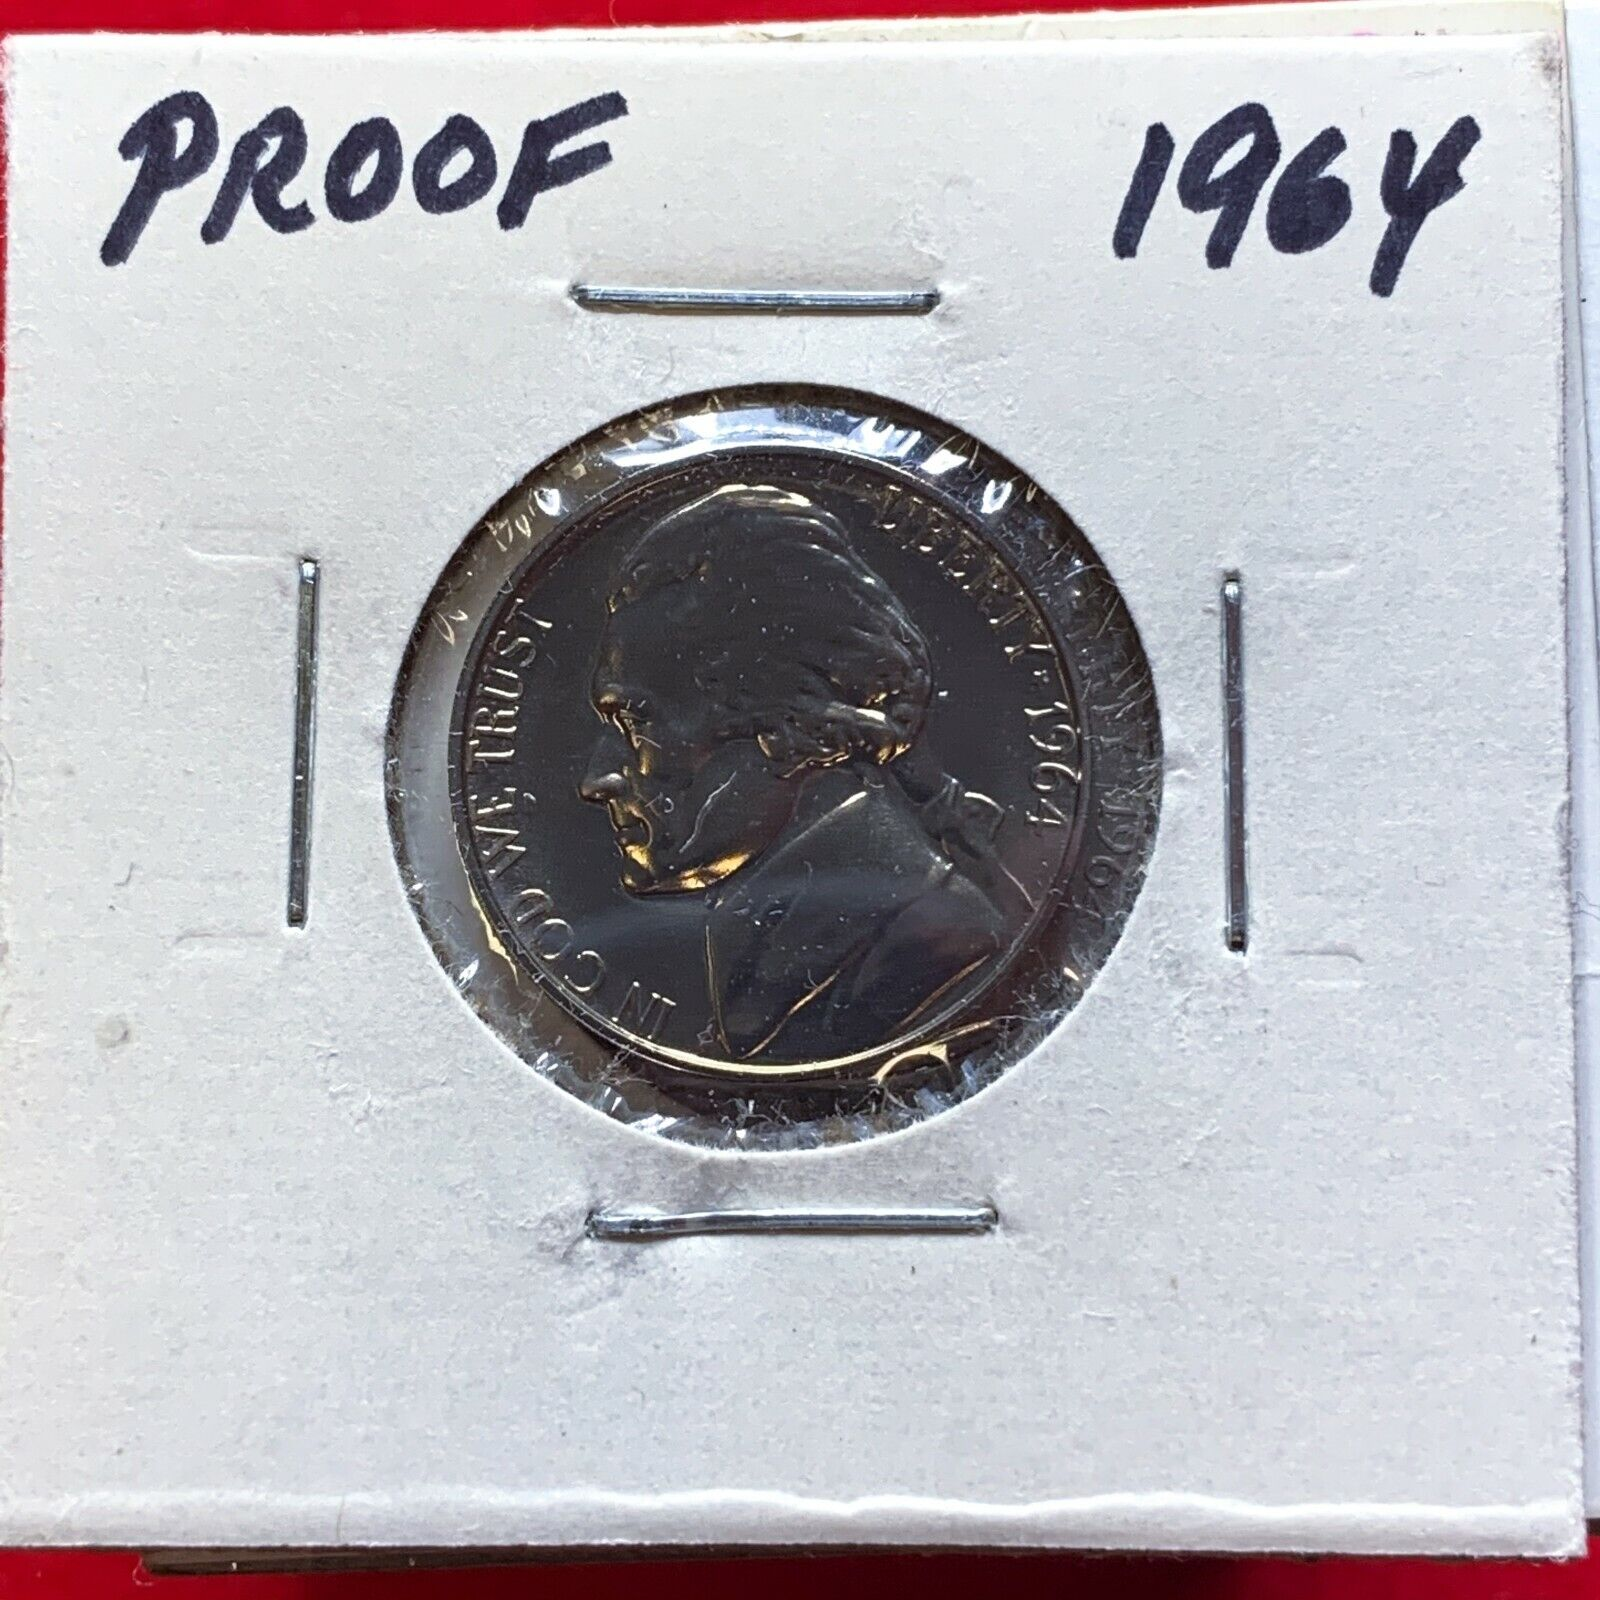 Lot Of 30 1964 Jefferson Nickels 5 Cent Proof Coins 166  - $39.99